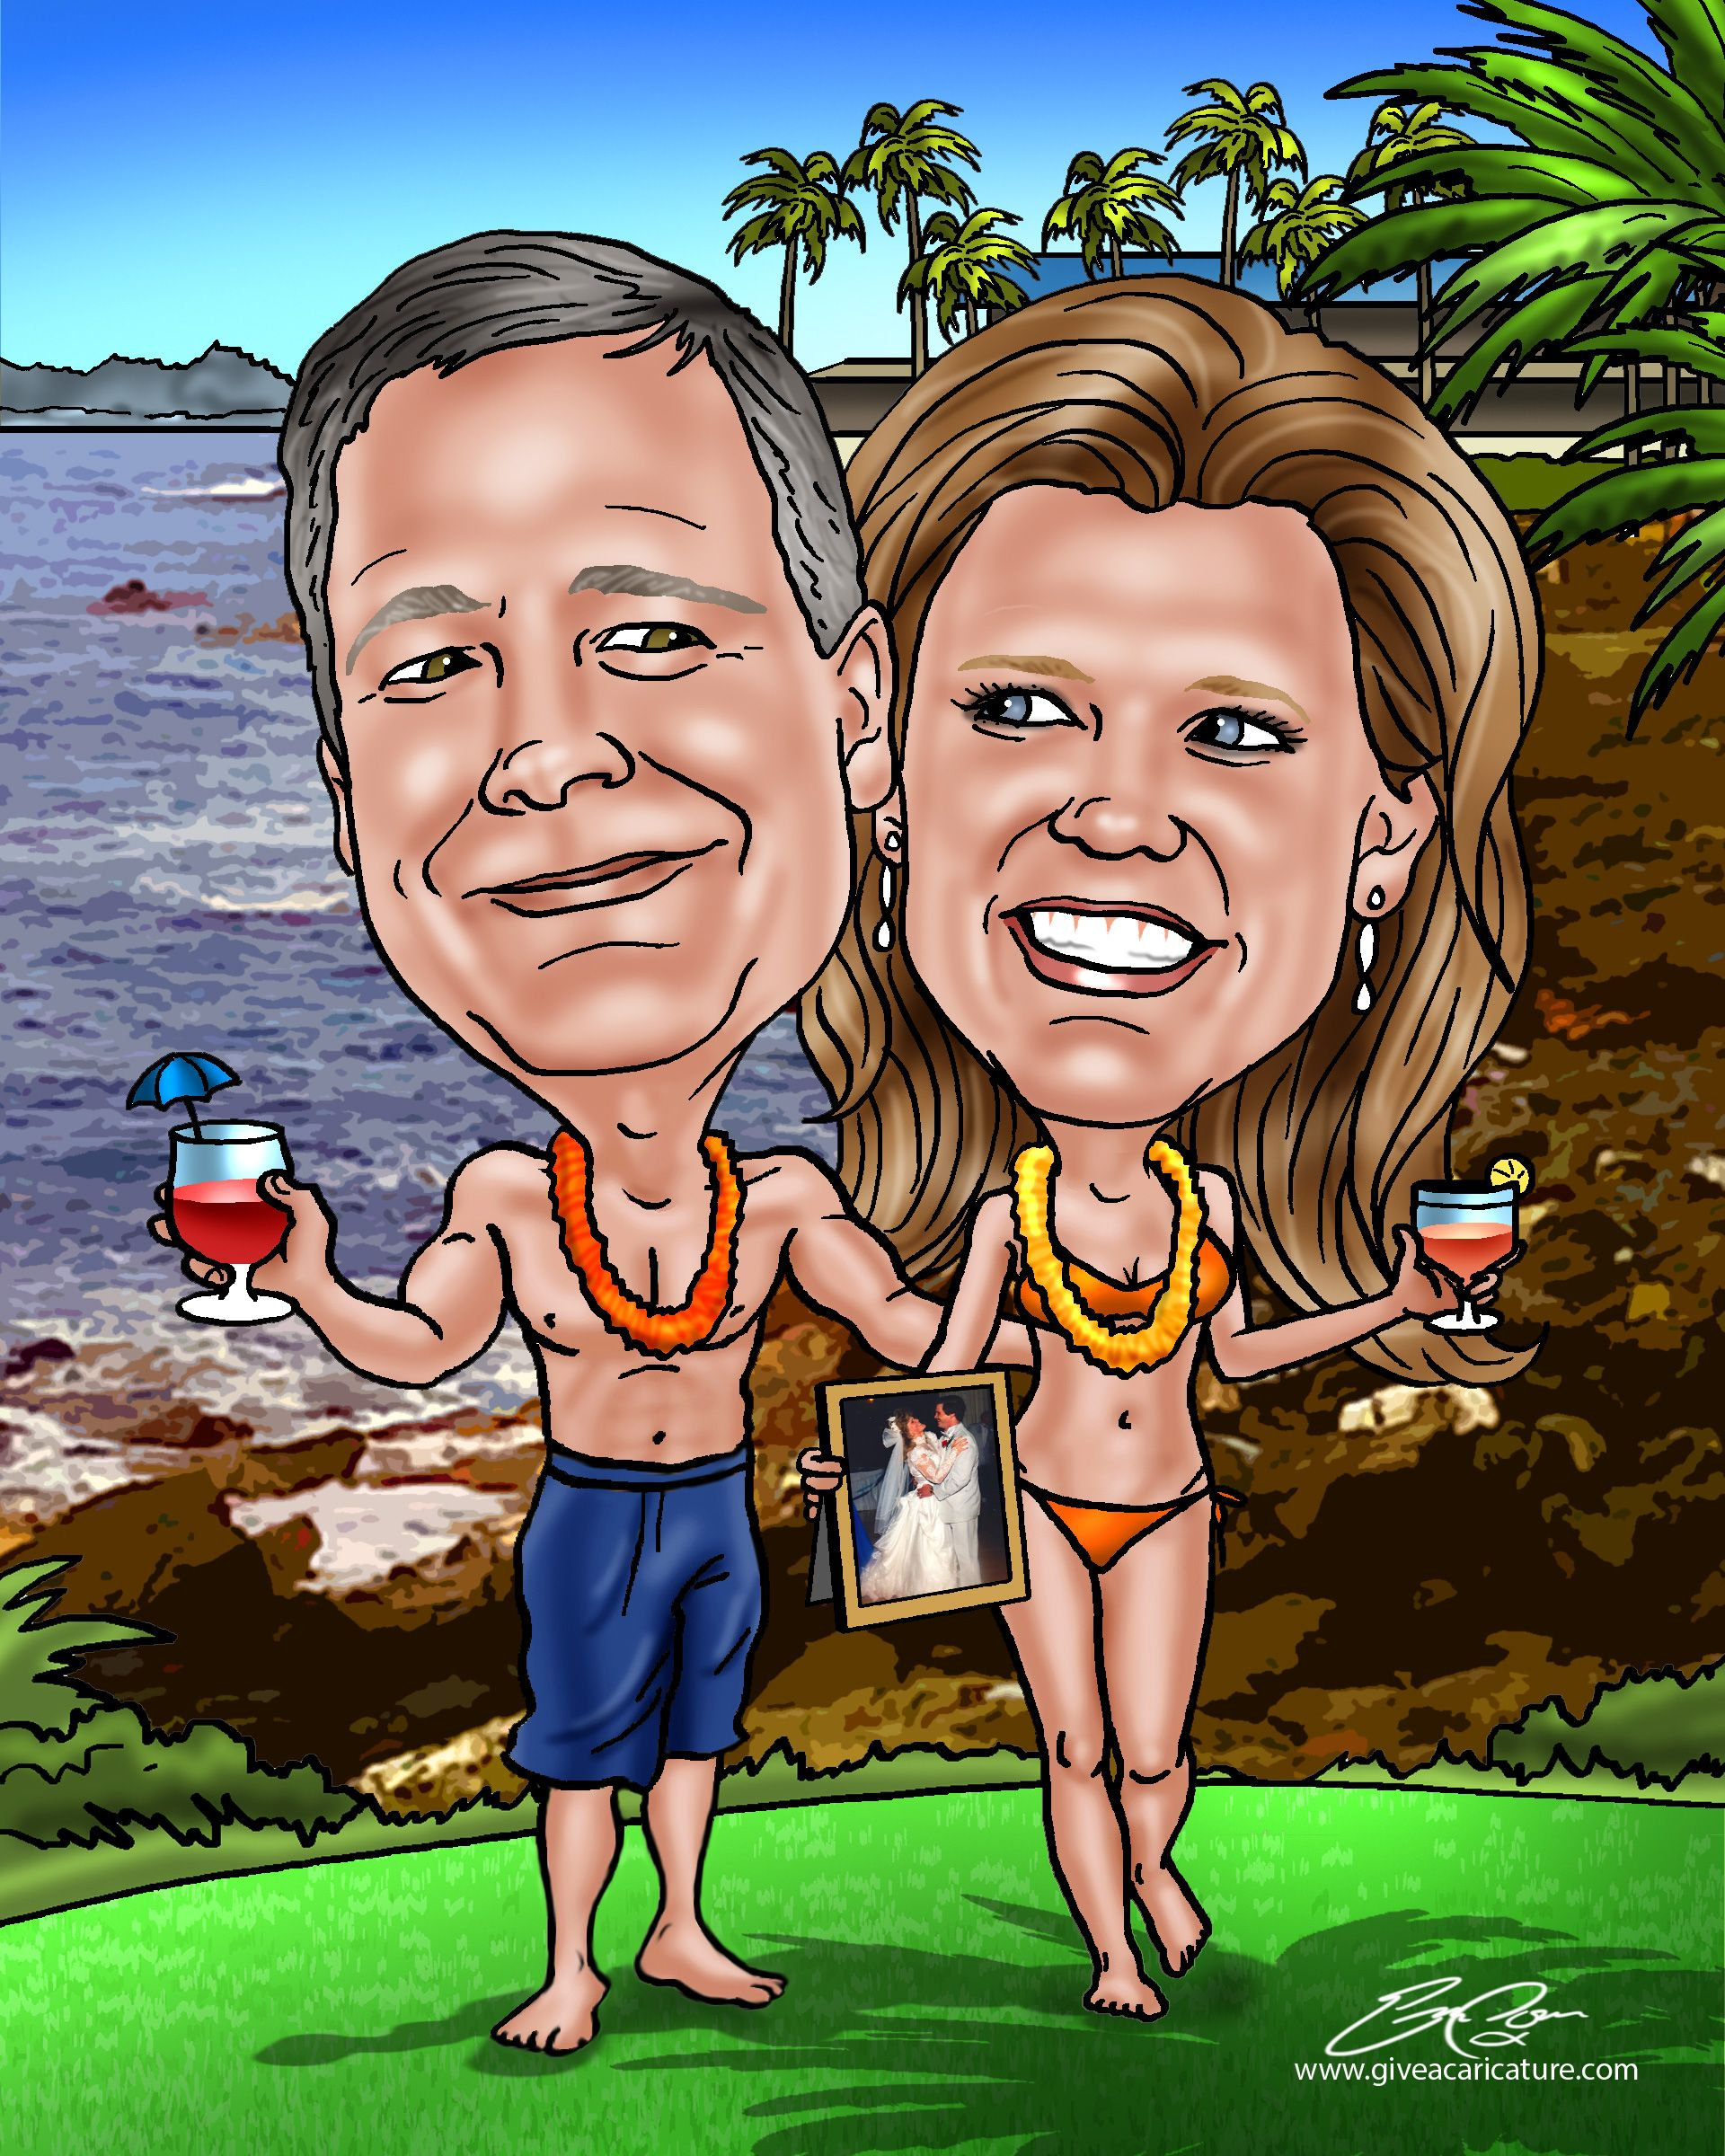 Gifts 25th Wedding Anniversary Couple: A Custom Caricature In 2019